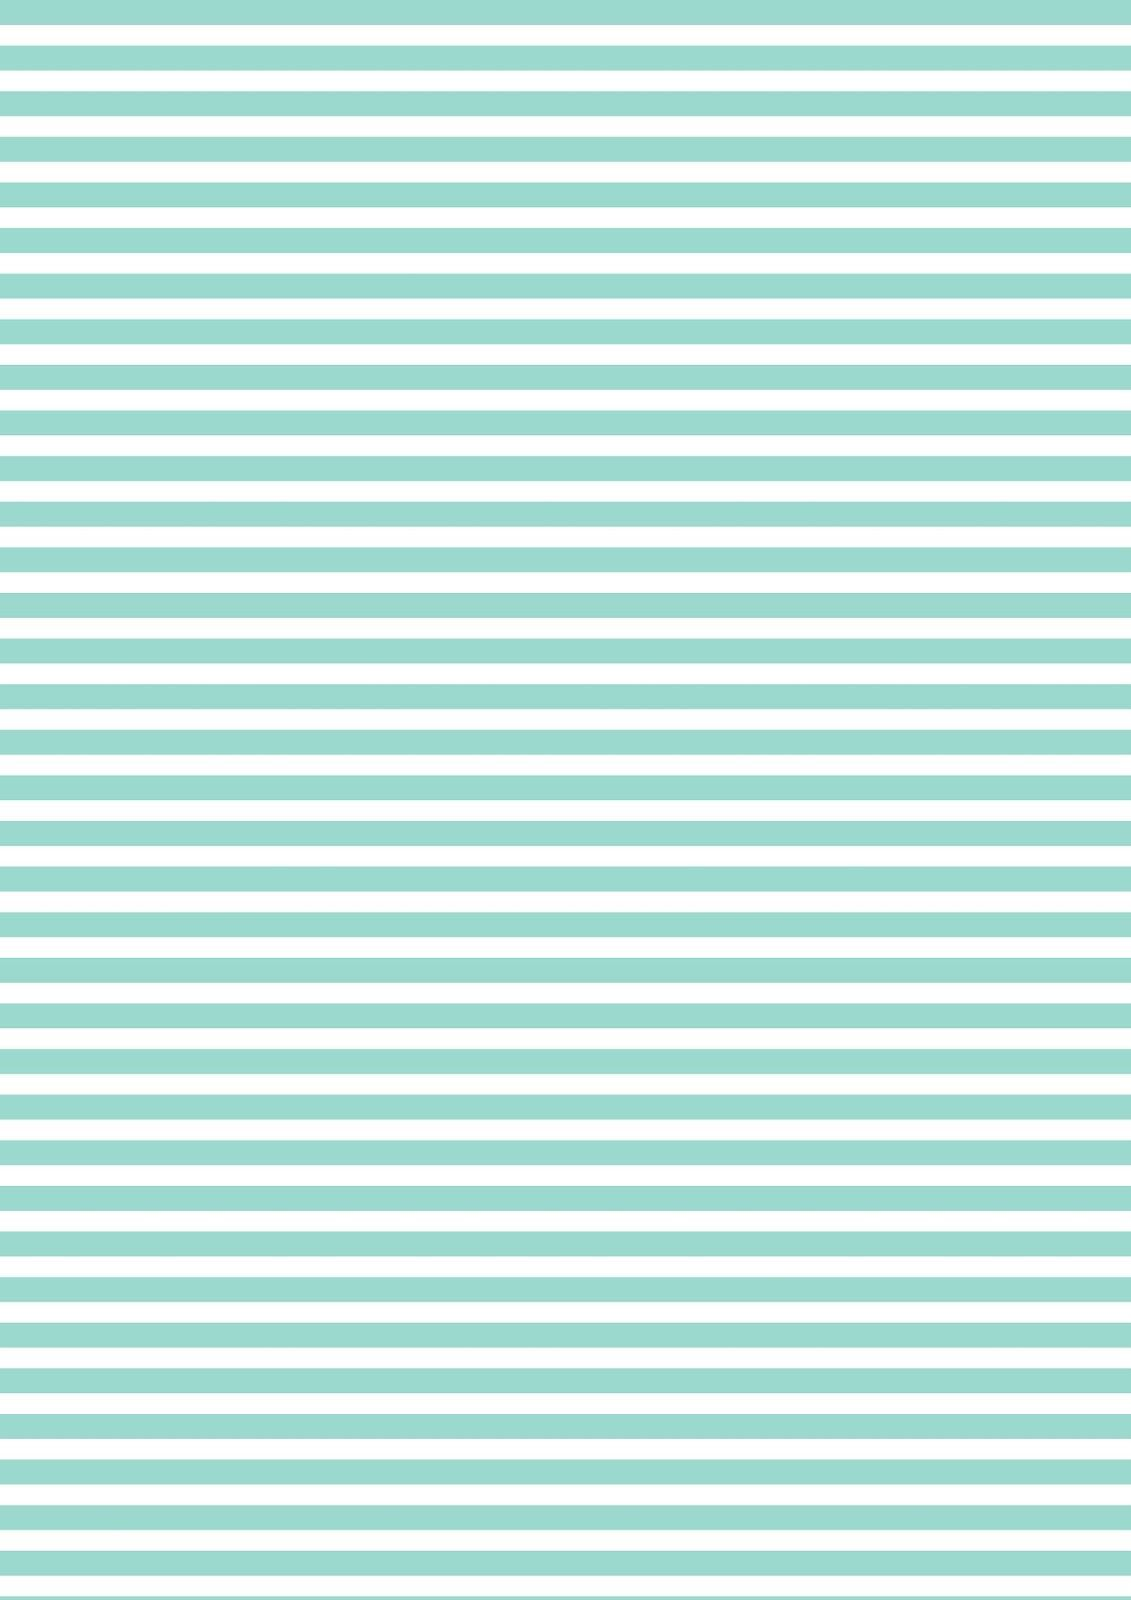 Scrapbook Backgrounds Printables Free Printable Turquoise White Striped Pattern Paper Bb Free Scrapbook Paper Scrapbook Background Printable Scrapbook Paper